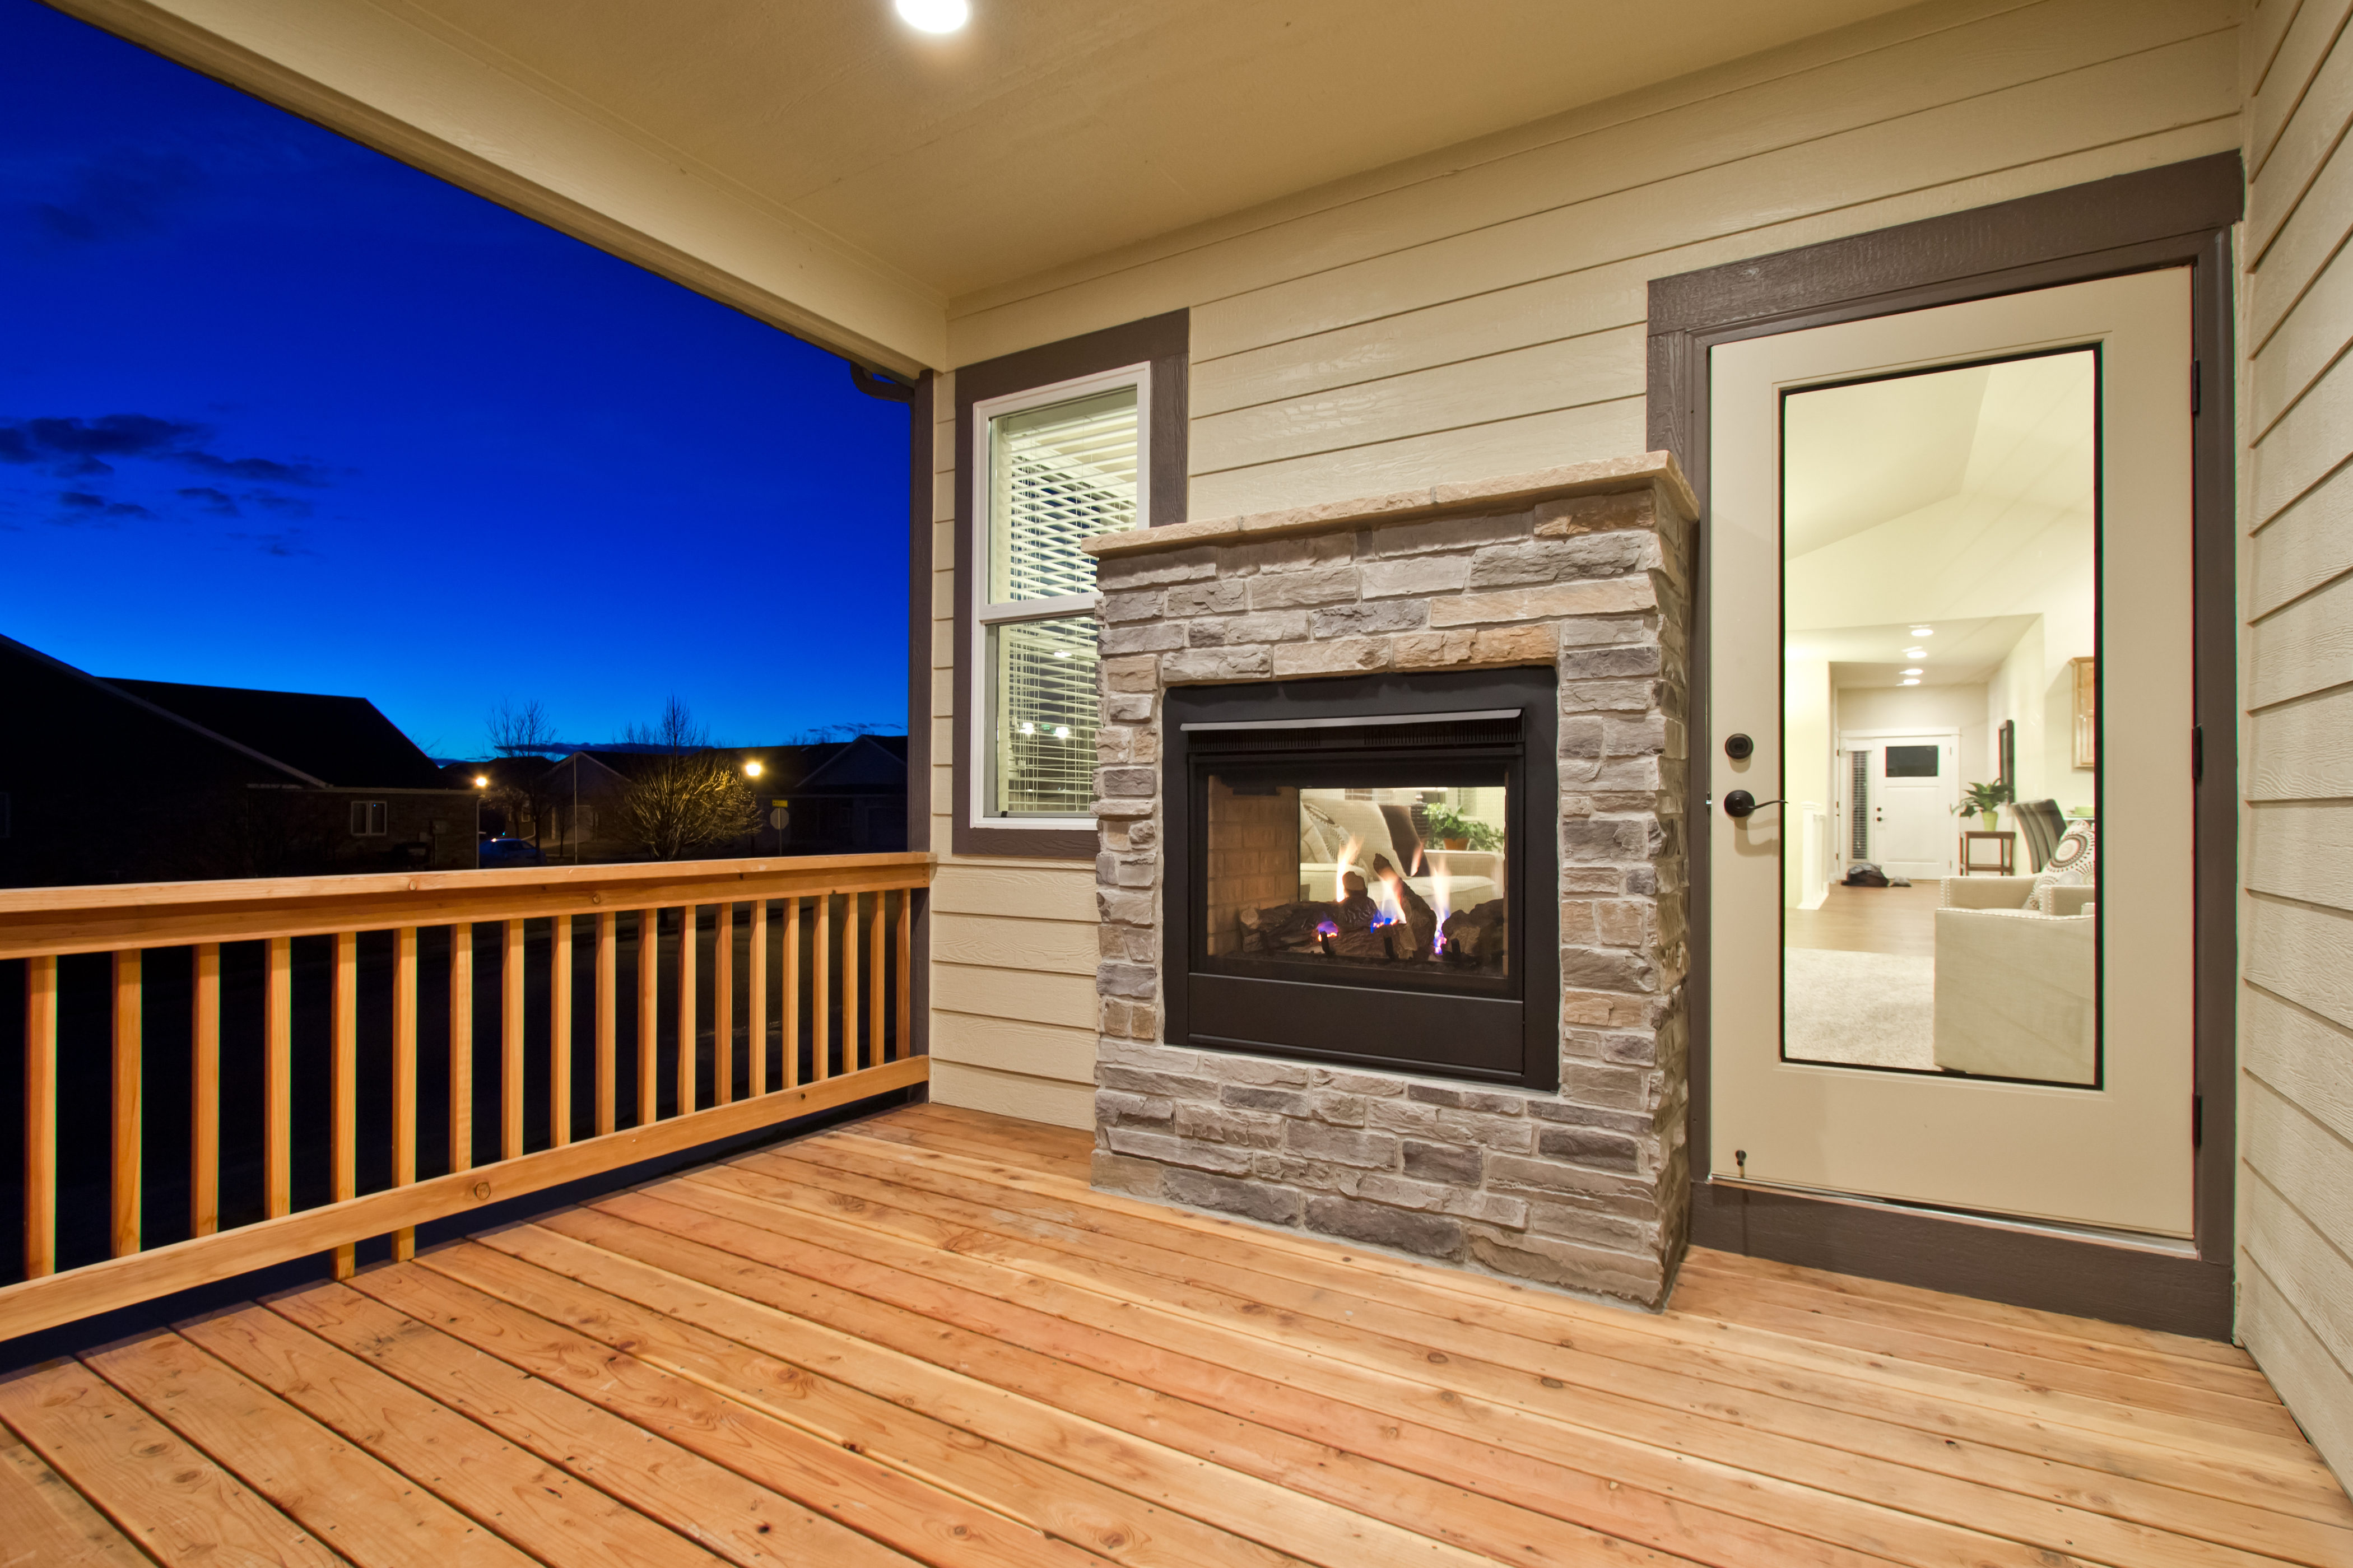 23__breckenridge_loveland_patio_20with_202-way_20fireplace_dream_20home_20for_20sale